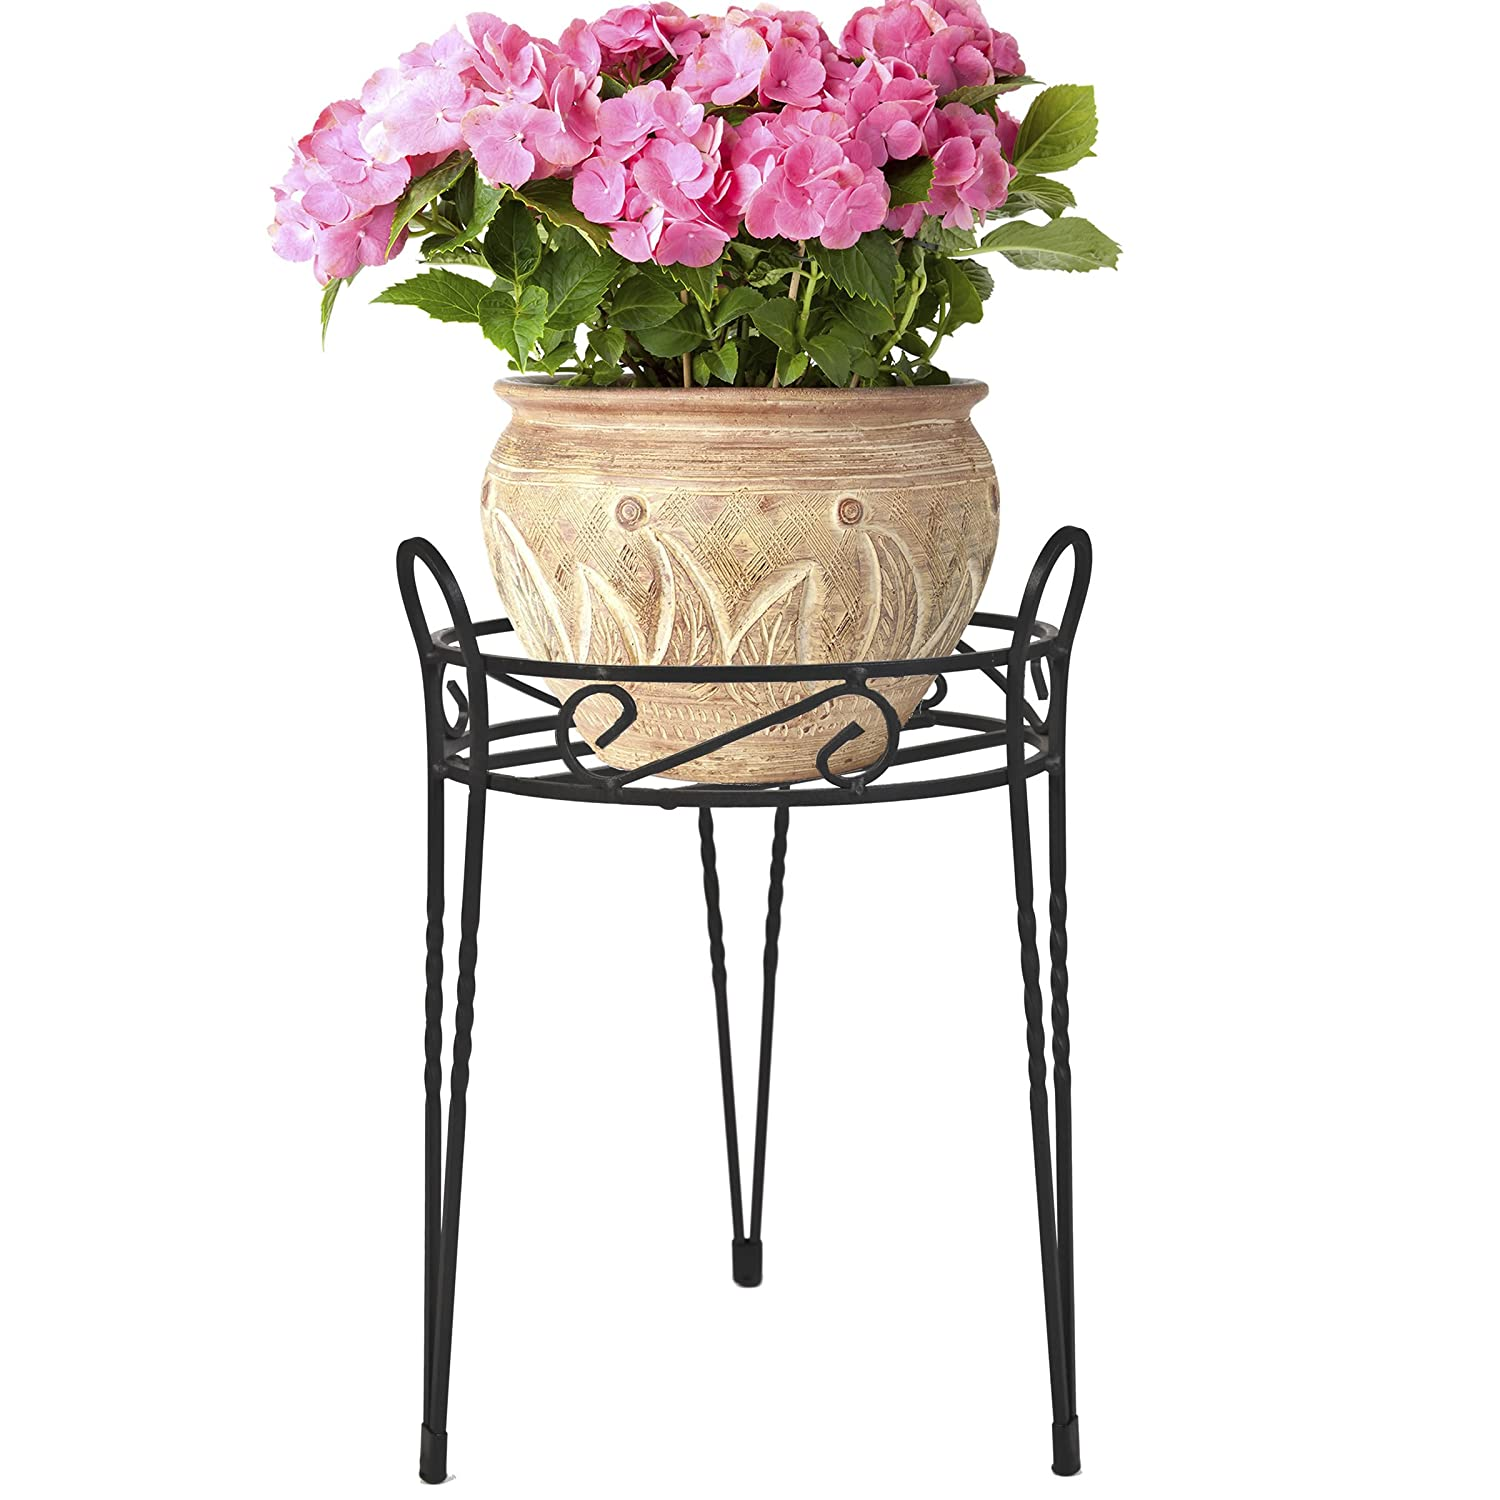 Black Metal Home Garden Decor Flower Pot Plant Planter